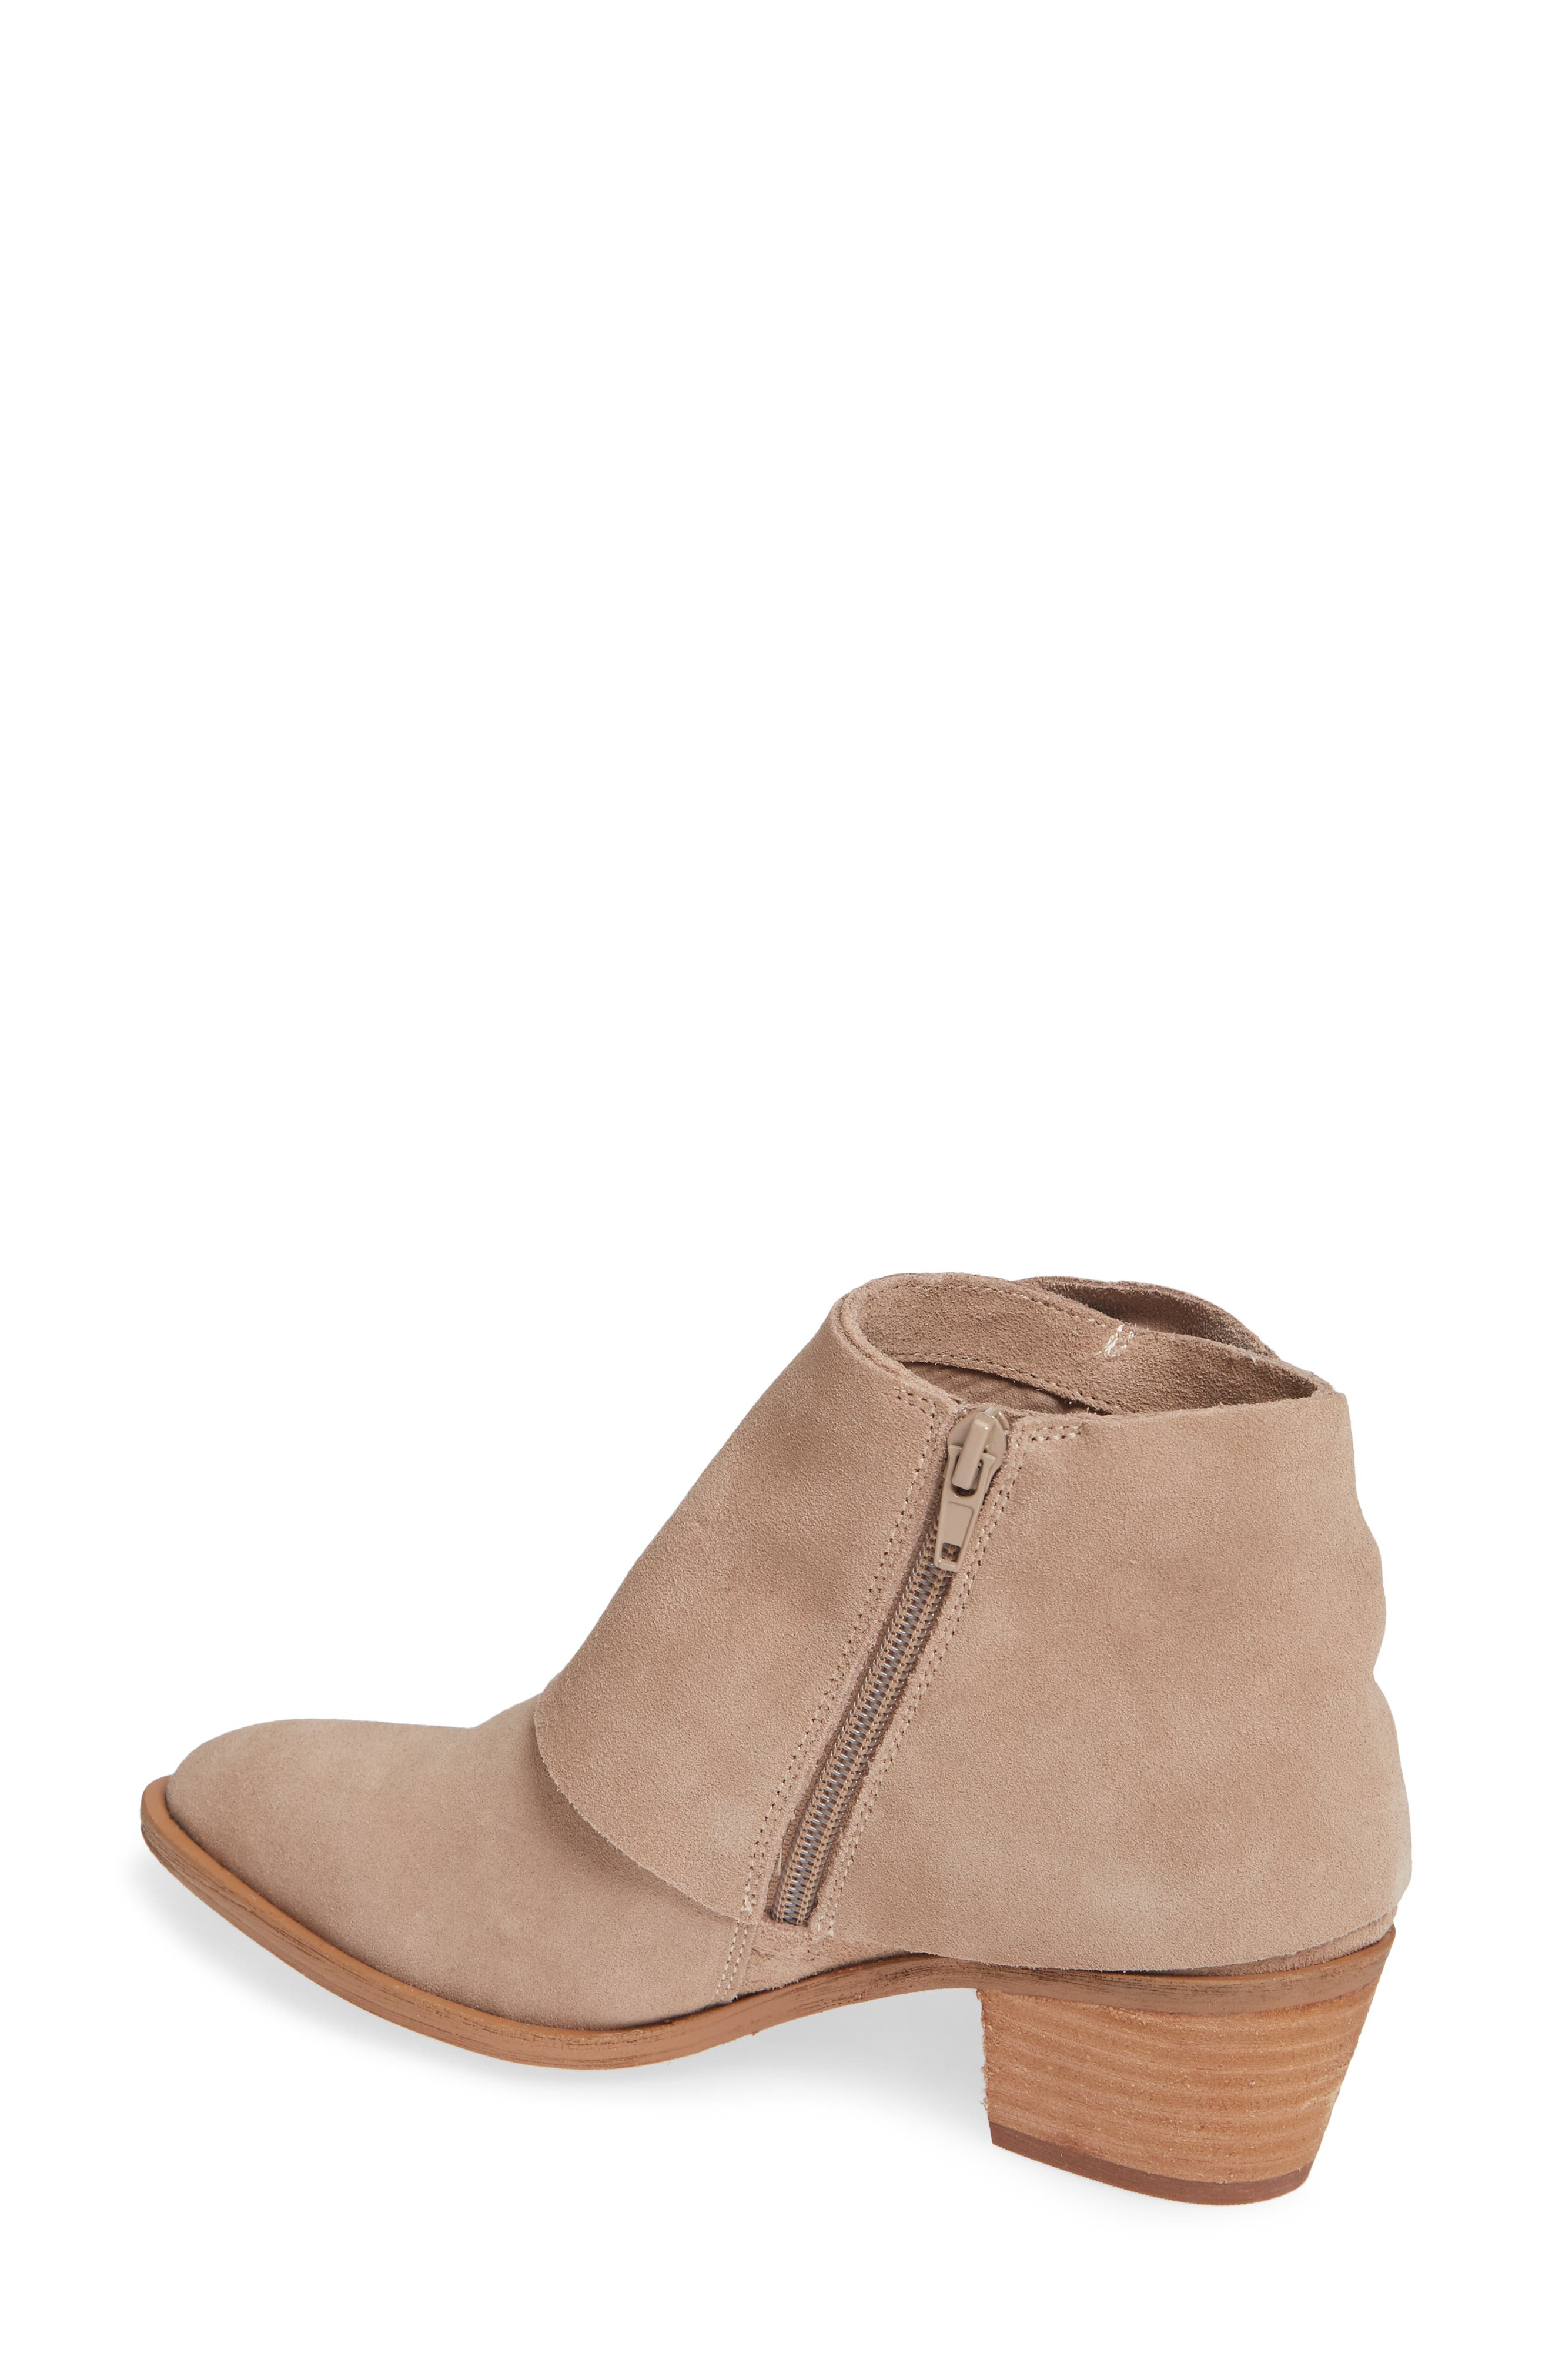 Natalyia Bootie,                             Alternate thumbnail 2, color,                             WARM TAUPE SUEDE